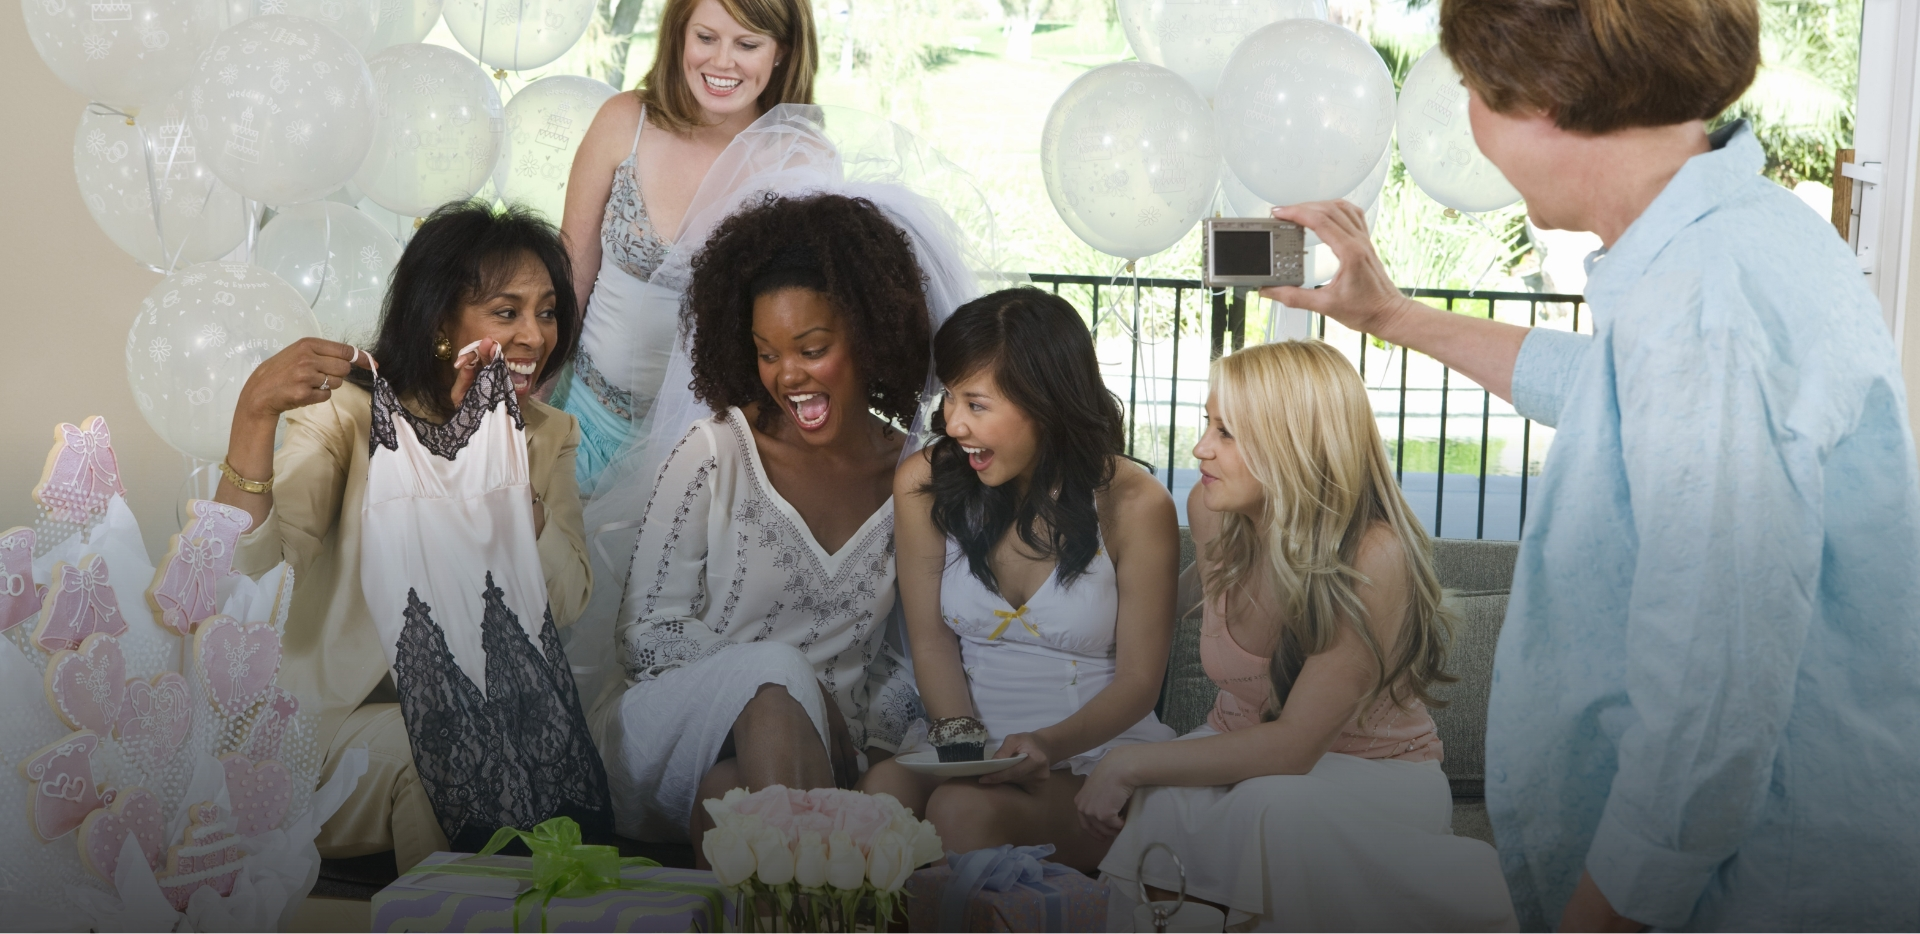 group of female friends and family look amused at risque gift at bridal shower